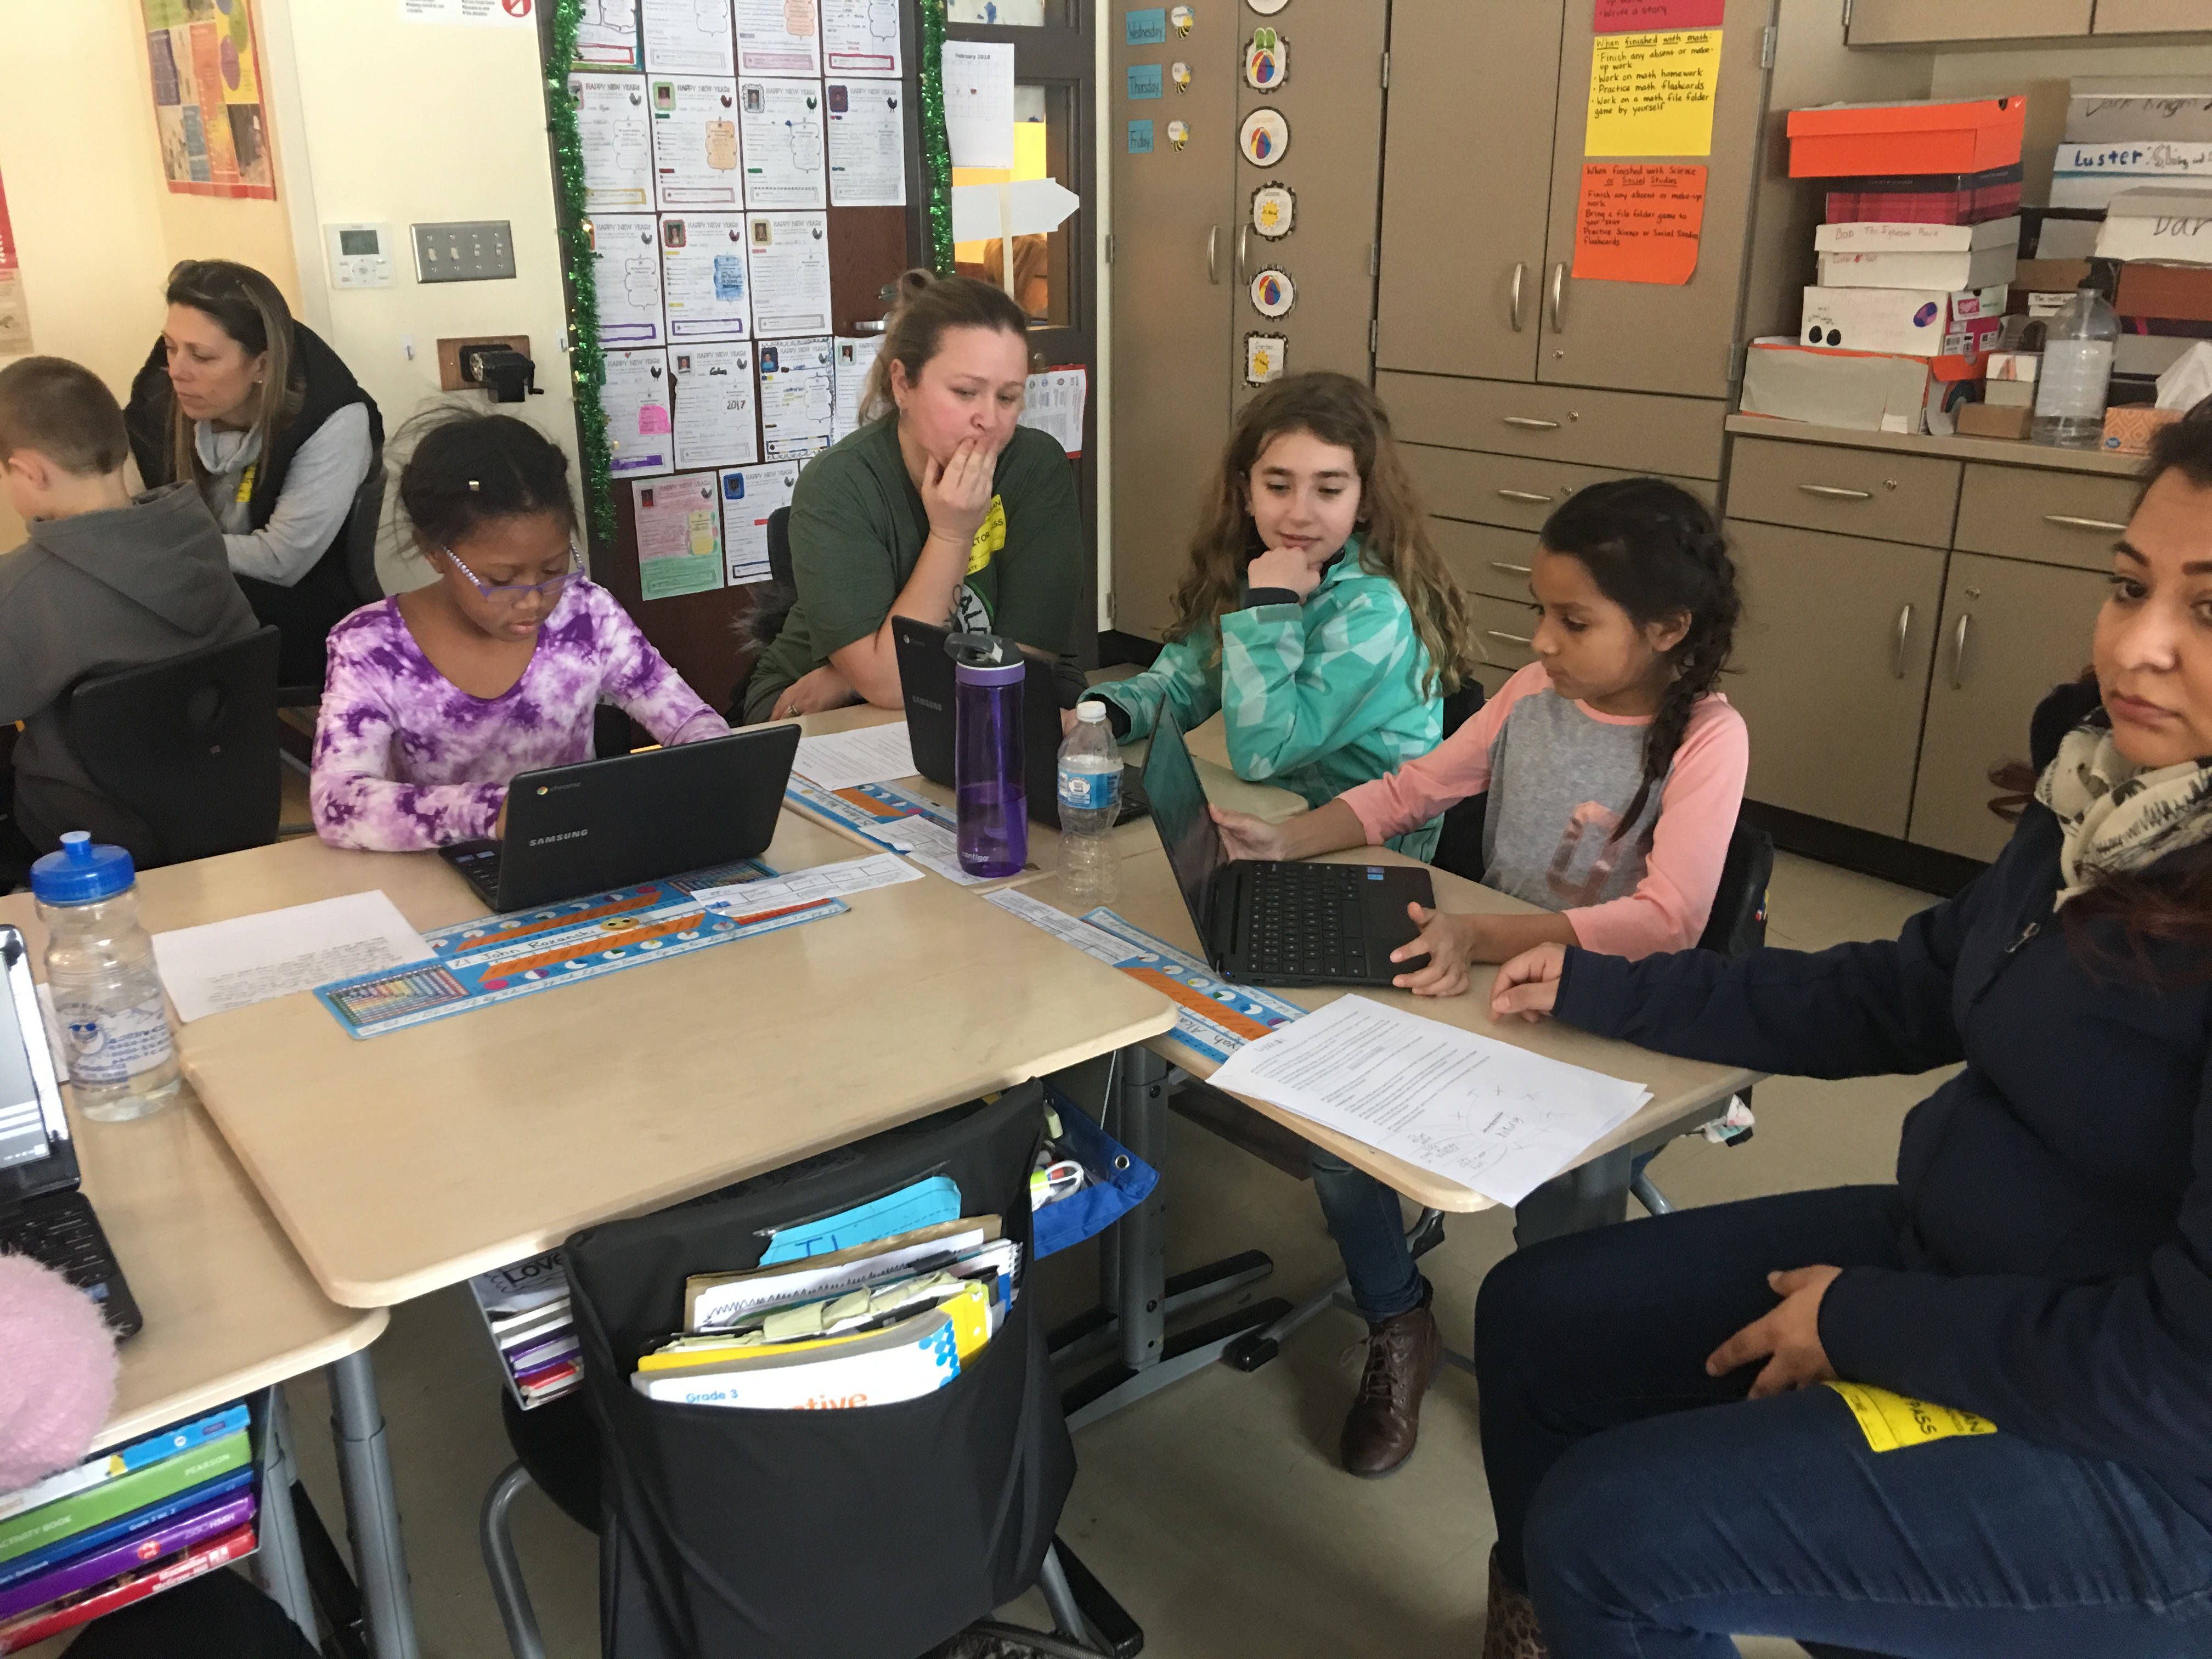 Parents and students look at Chromebooks